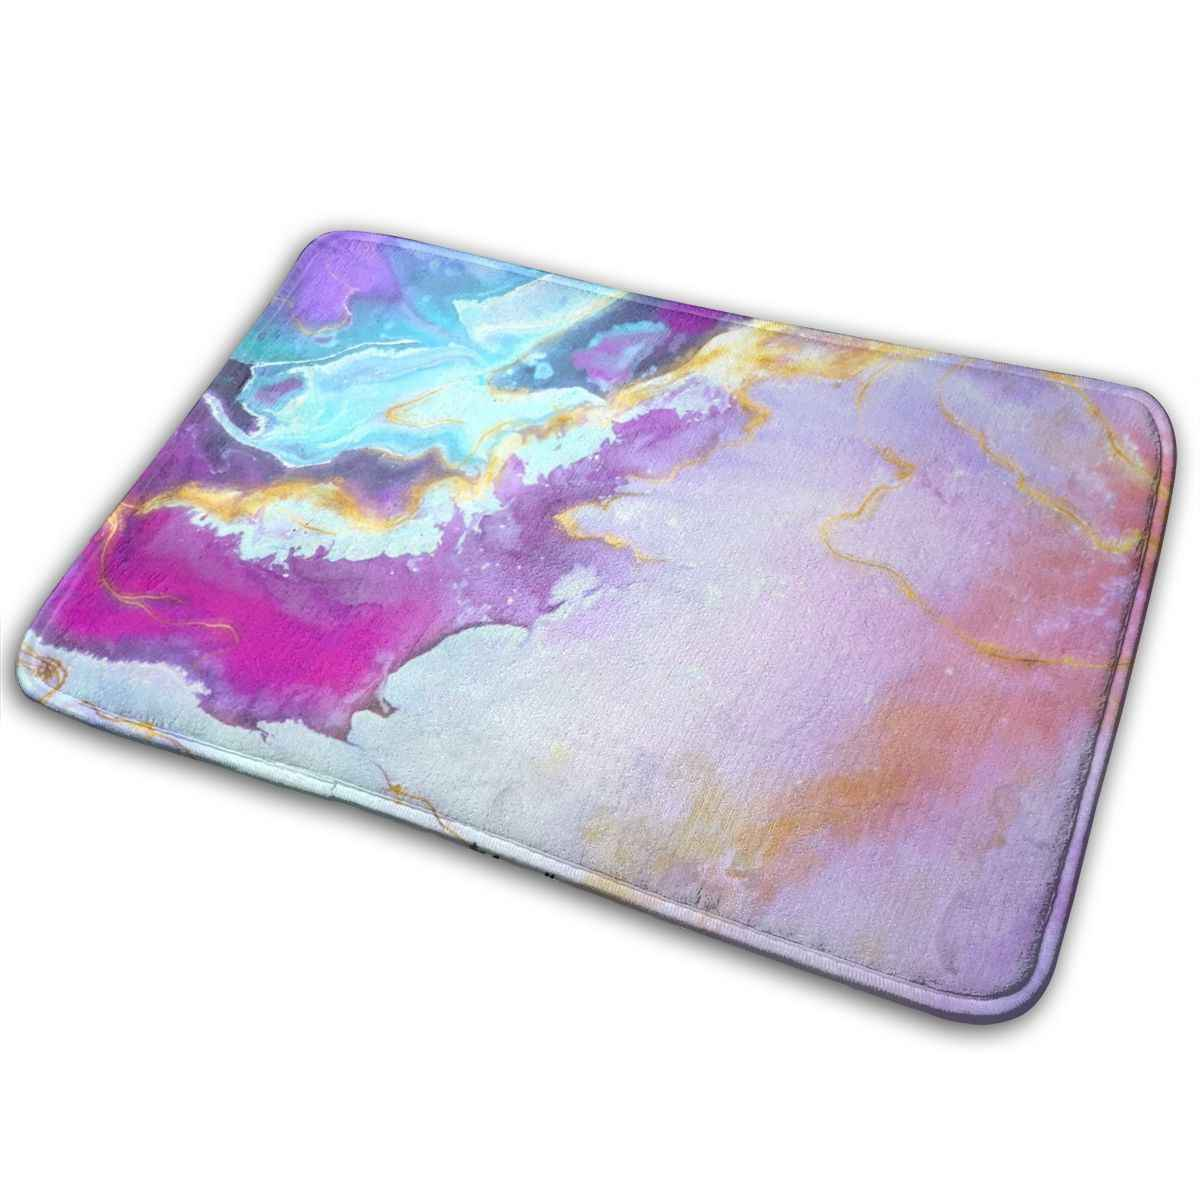 Purple Magic Marble Doormats For Entrance Way Entry Rug Non Slip Pvc Waterproof Backing Shoe Mat For Entryway Machine Washable Aliexpress